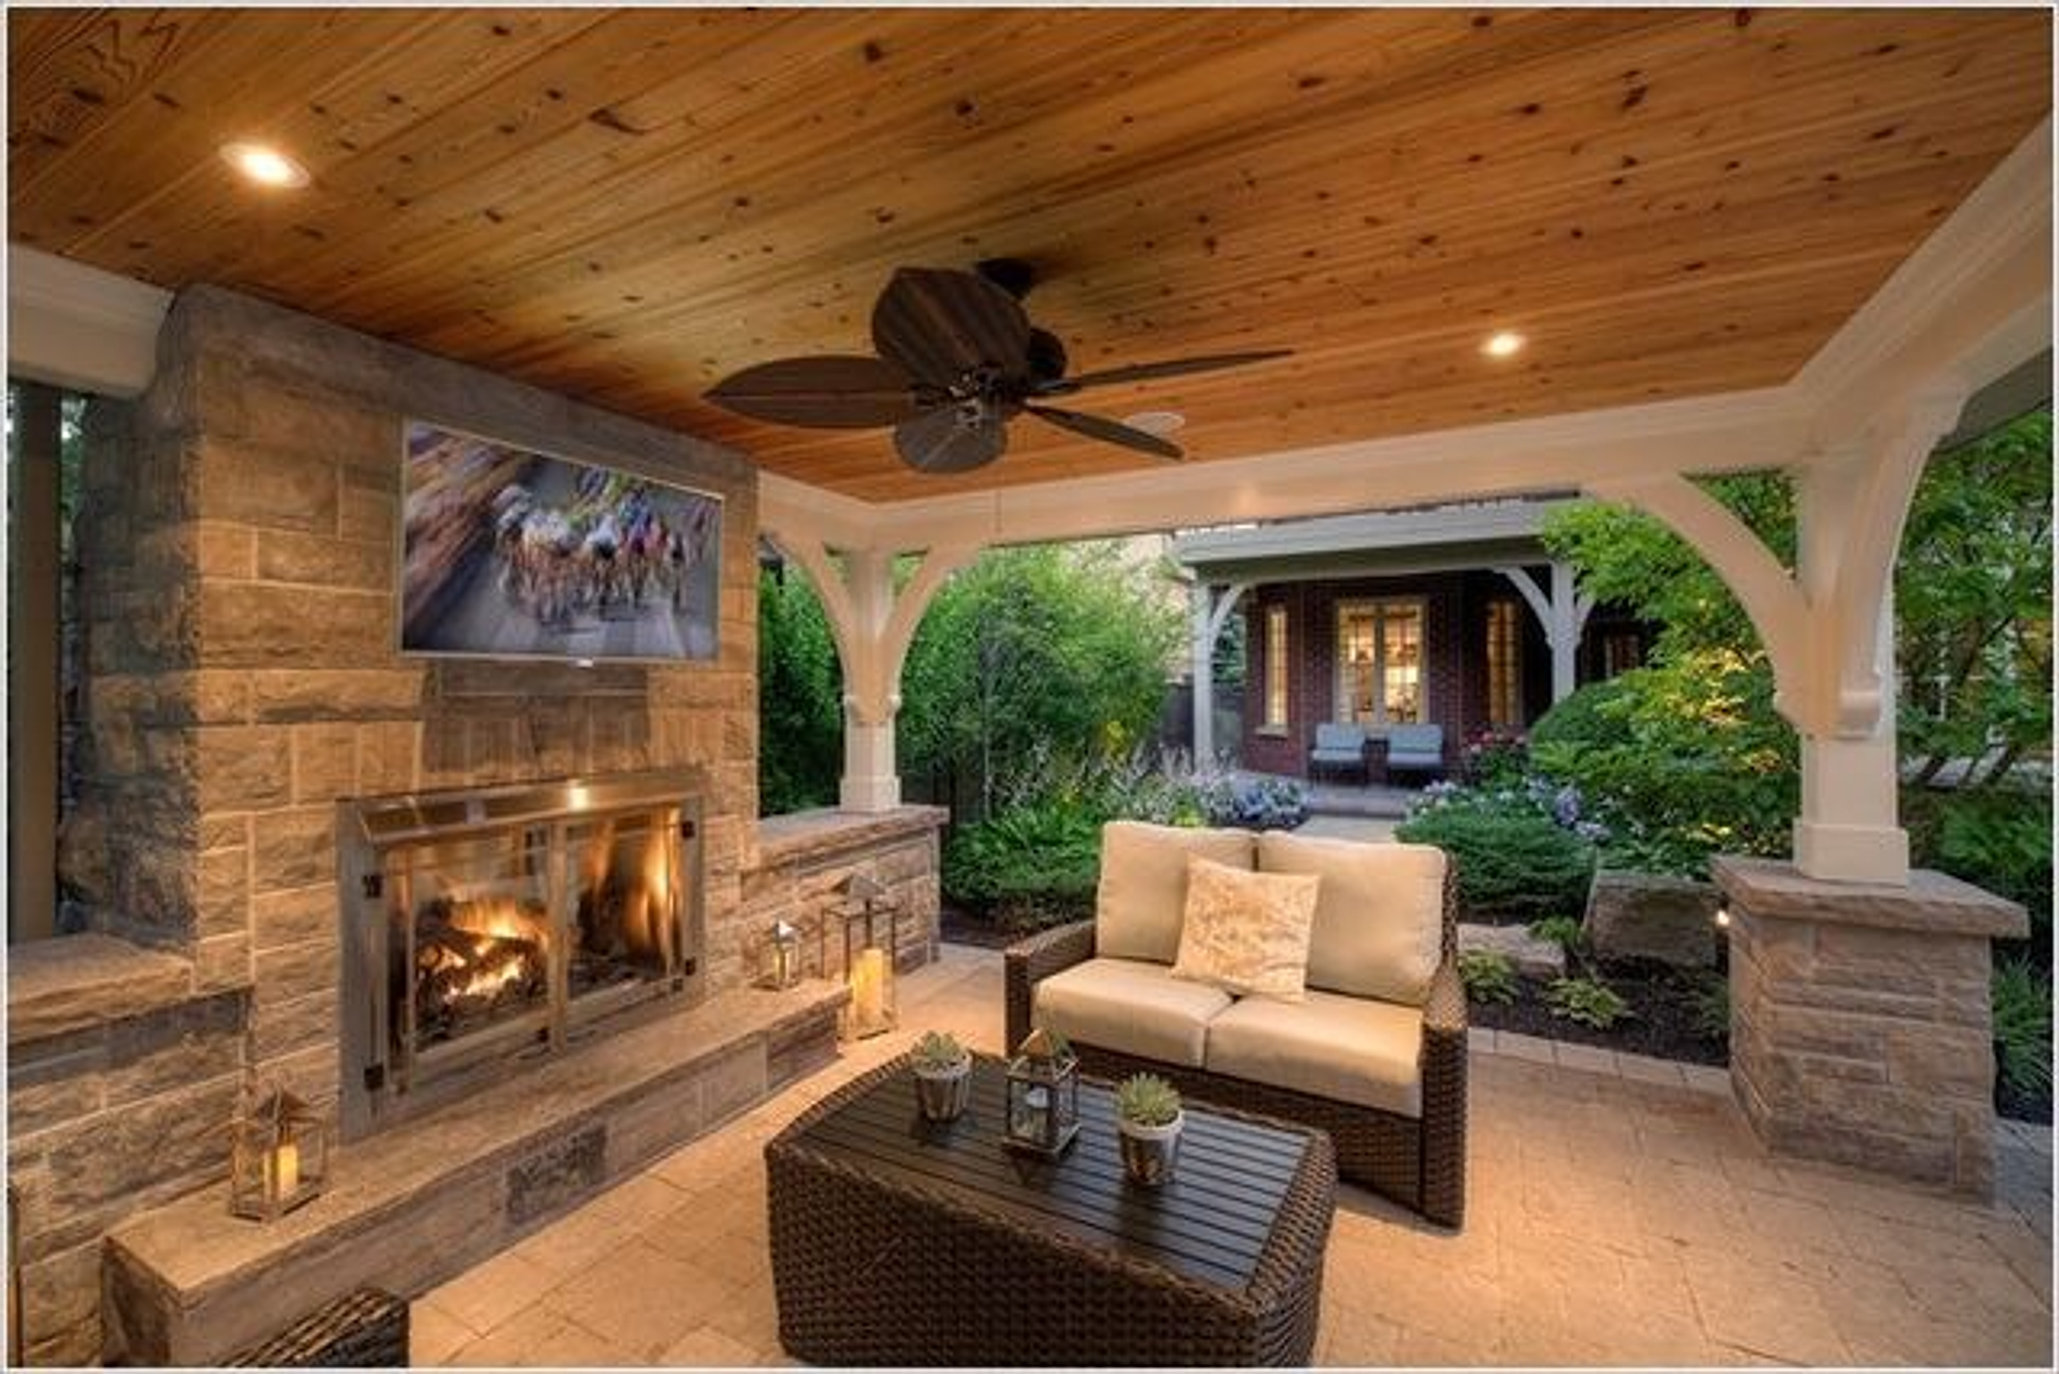 PITTSBURGH OUTDOOR LIVING /HOME | Outdoor Space Ideas